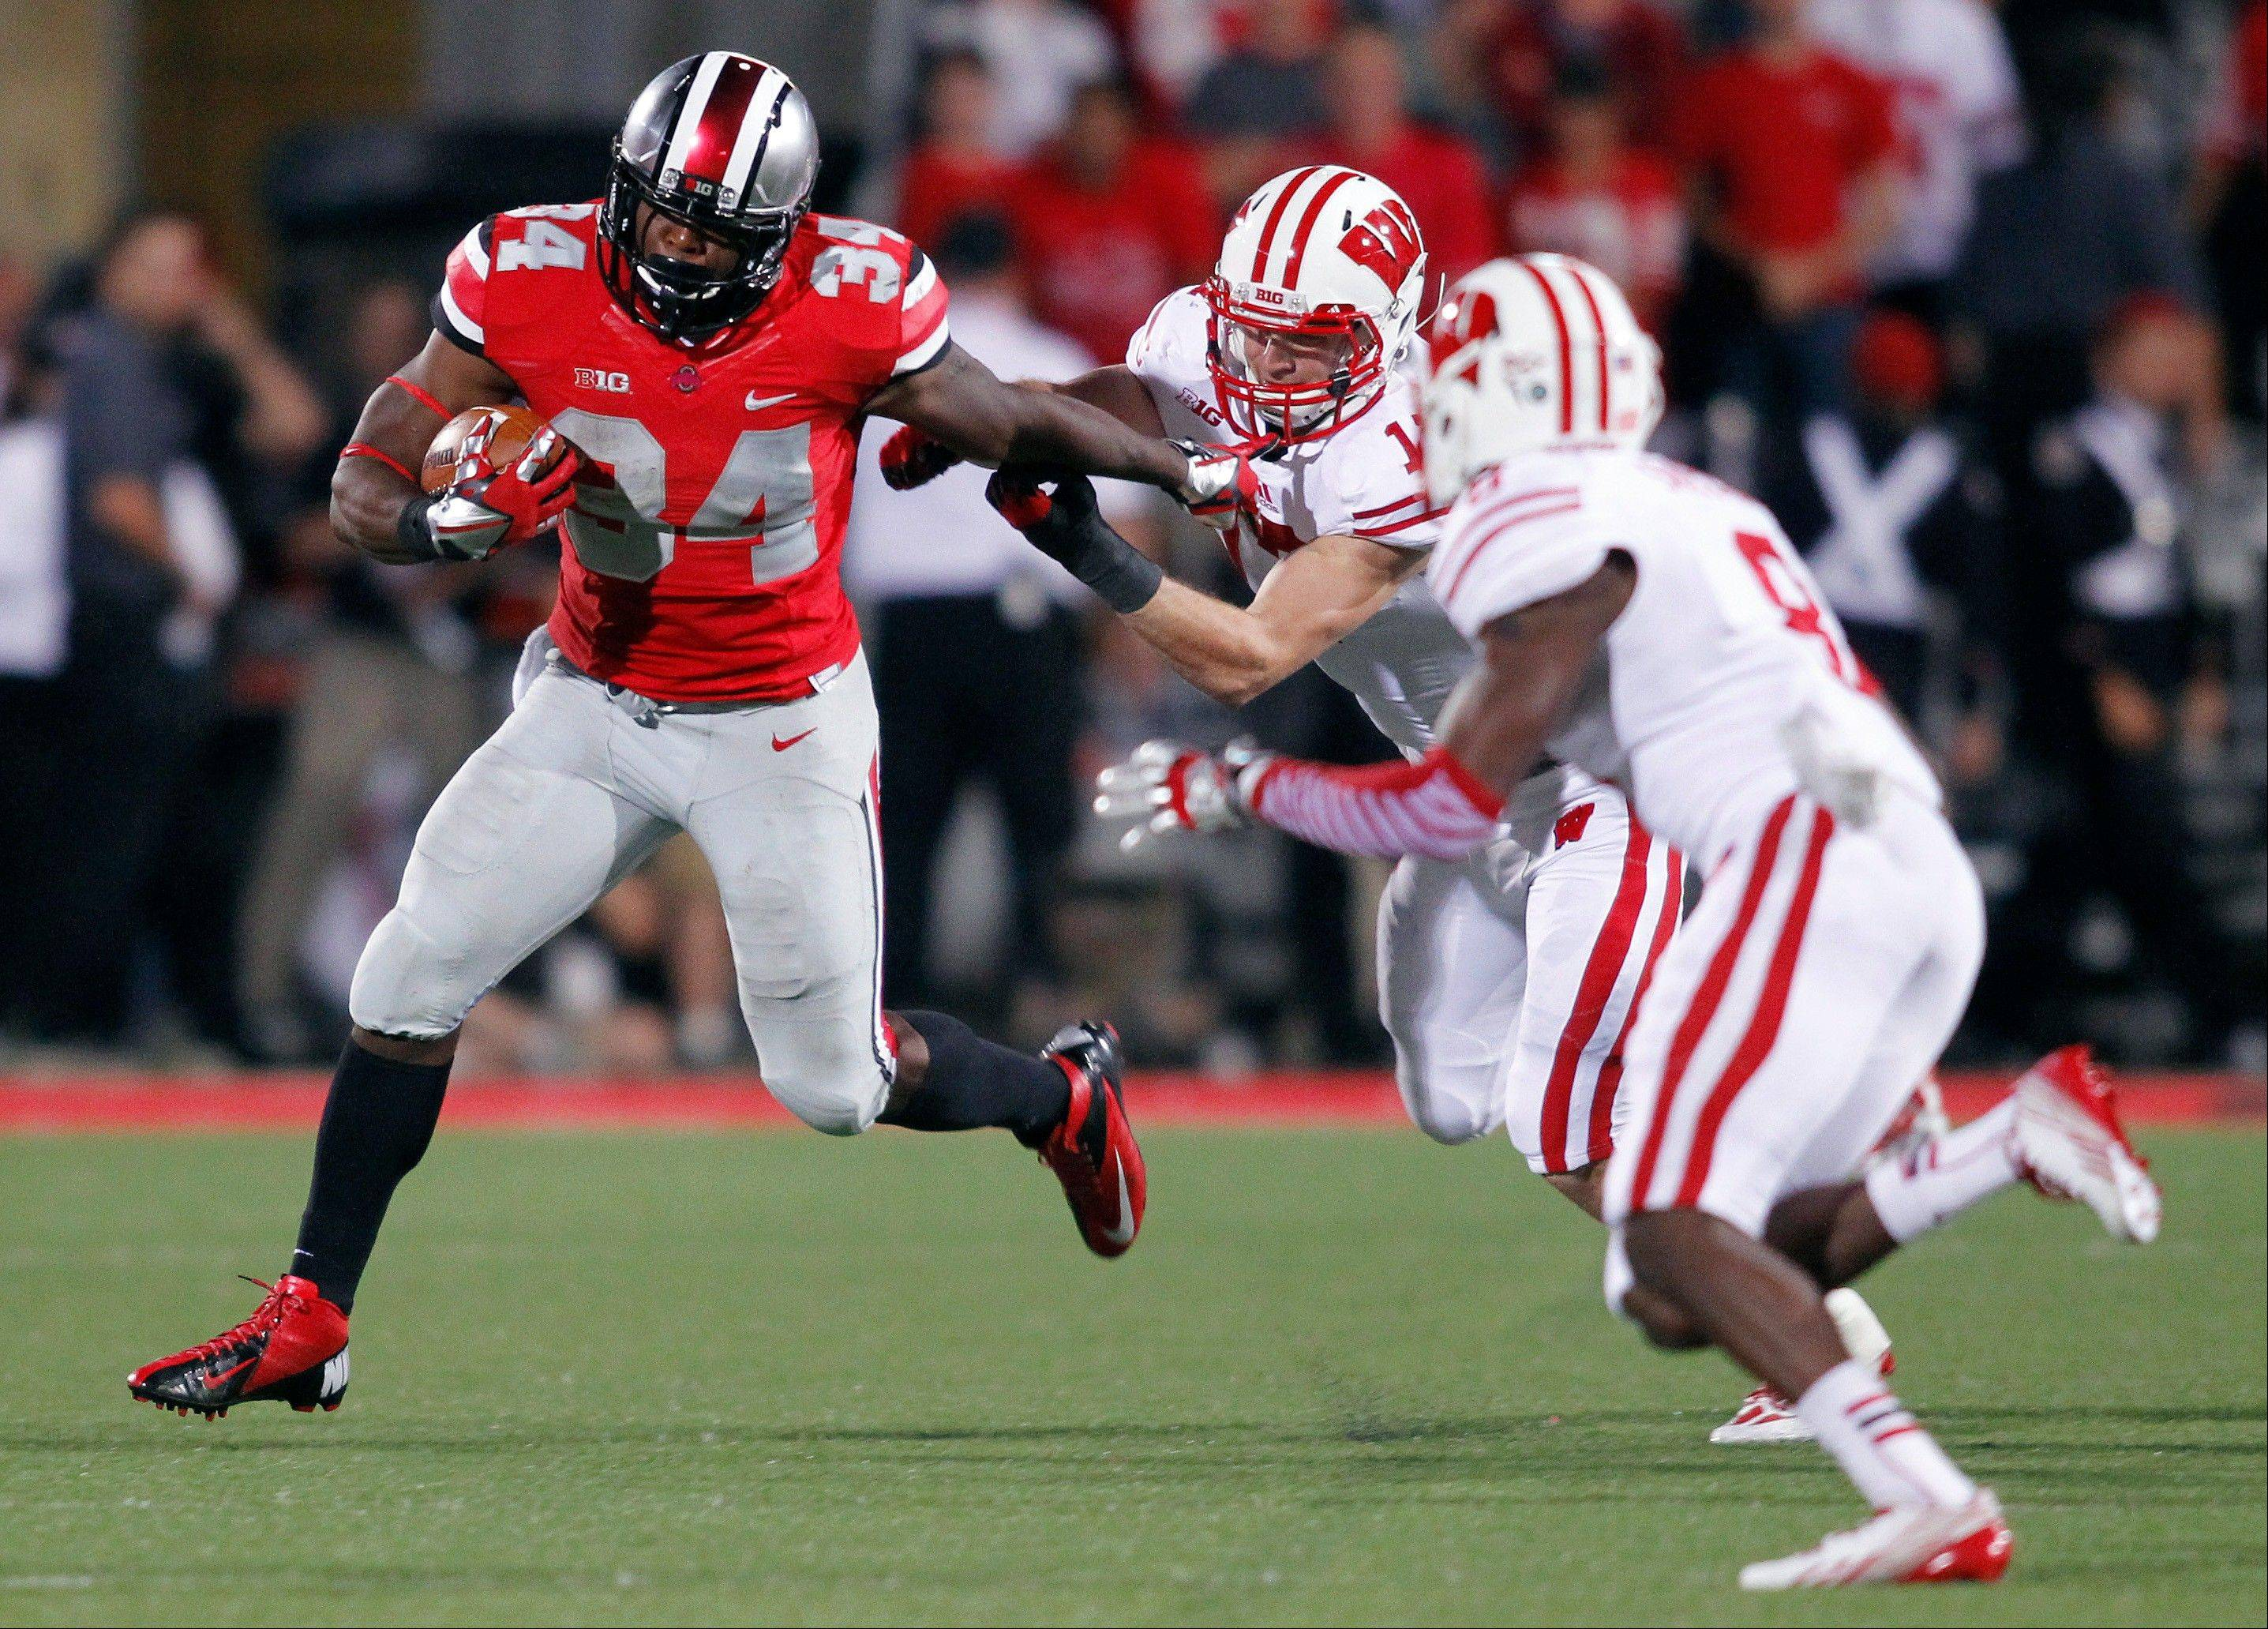 Ohio State running back Carlos Hyde, left, tries to get around Wisconsin defenders during the fourth quarter of the Sept. 28 game in Columbus, Ohio. Iowa has yet to give up a rushing TD this season.